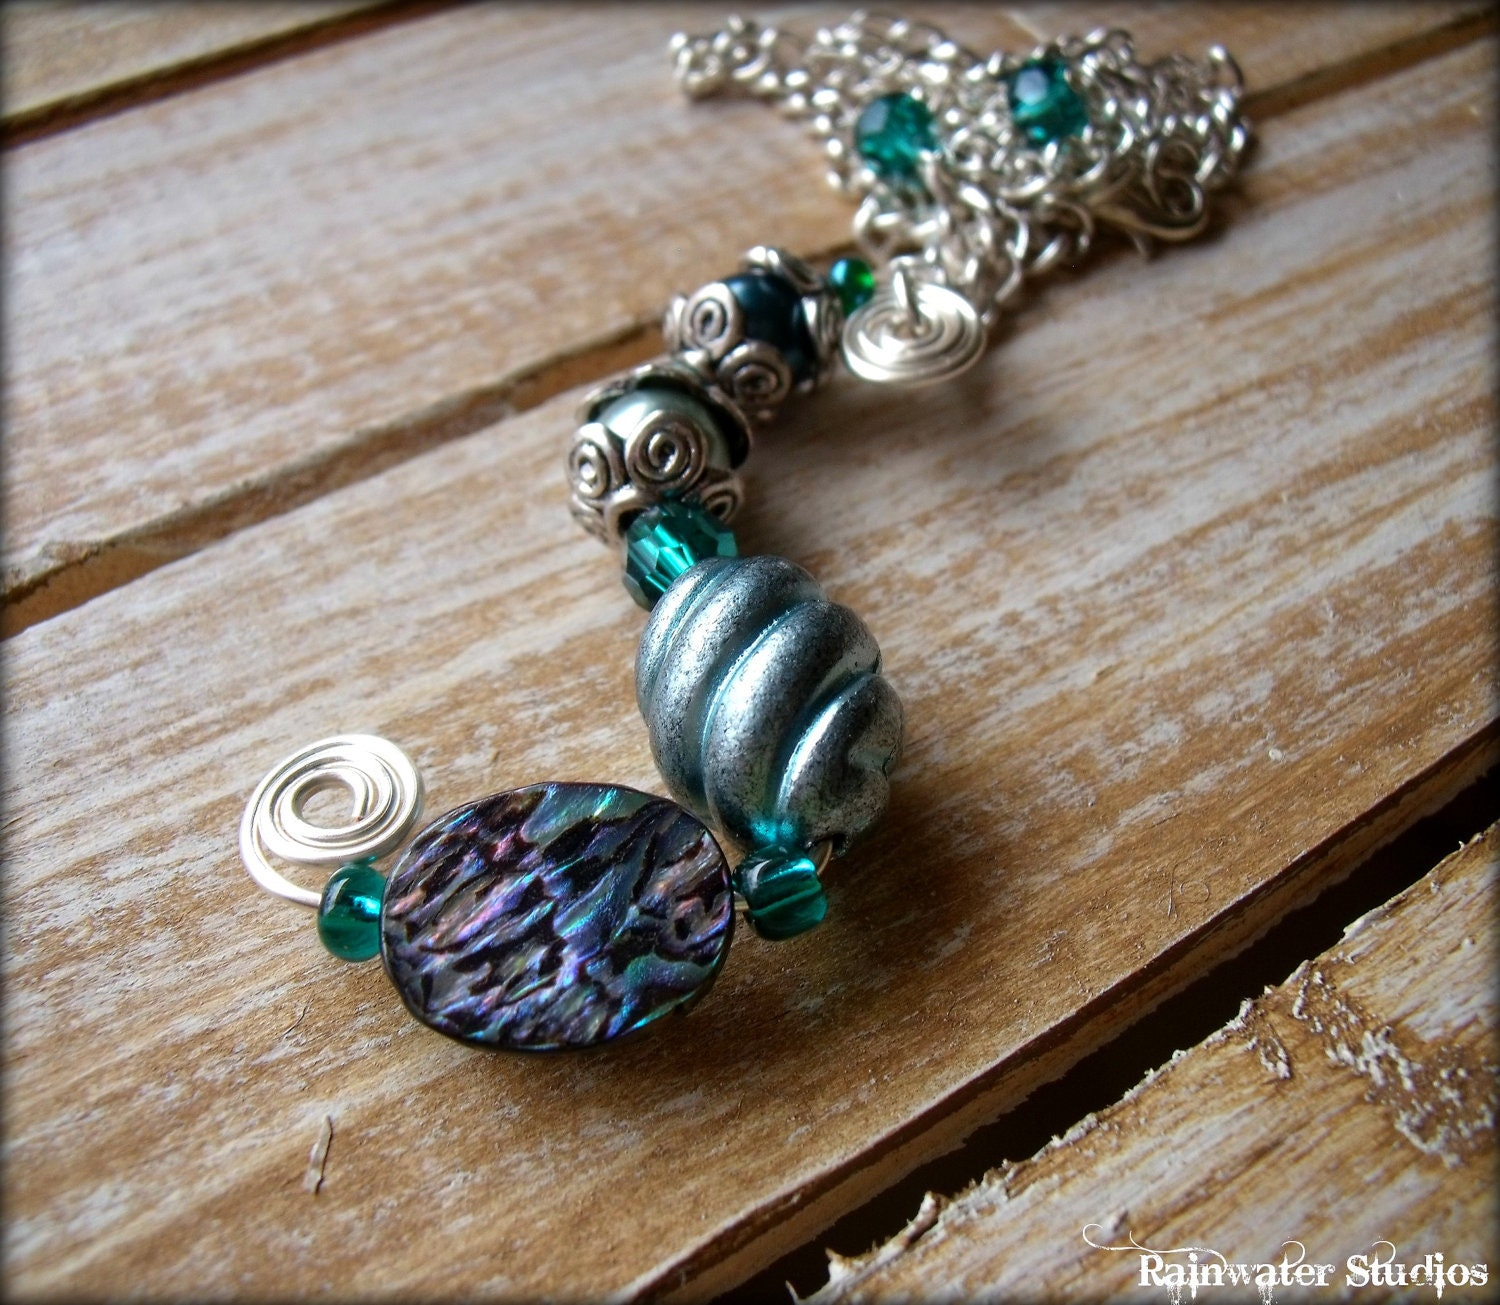 By The Sea Collection - Swirls & Abalone Pendant - Abalone, Swarovski Crystals, Free Shipping - RainwaterStudios